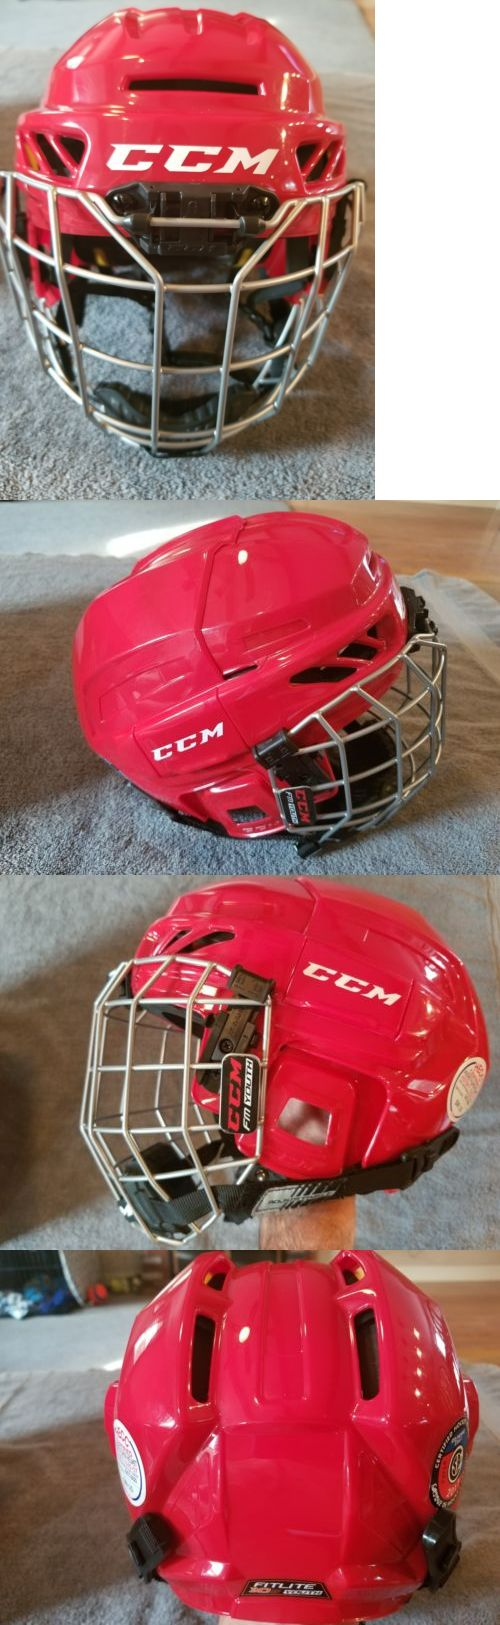 Helmets 20854: Ccm Fitlite 3Ds Youth Hockey Helmet W Cage (Red) -> BUY IT NOW ONLY: $35 on eBay!